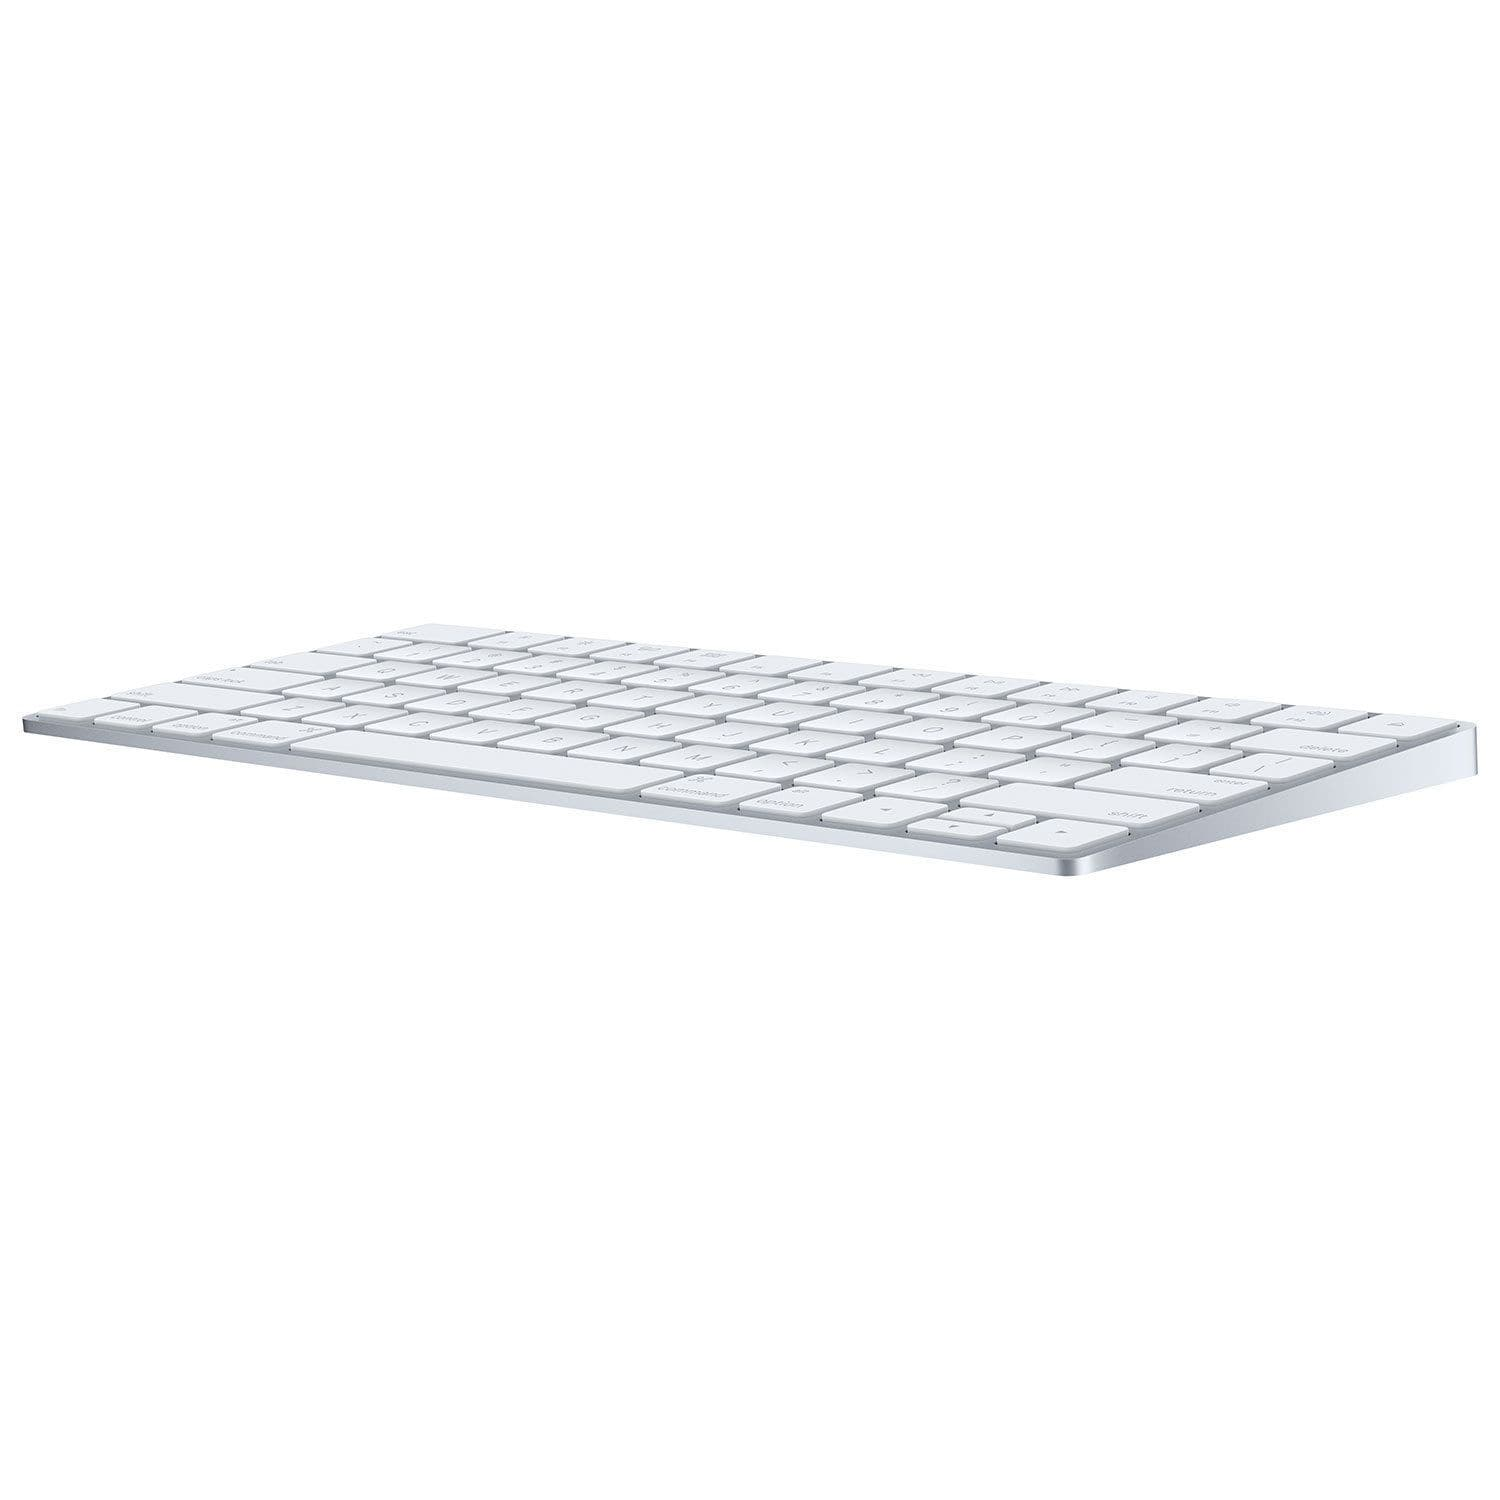 Apple Magic Keyboard (MLA22LL/A) 100% original